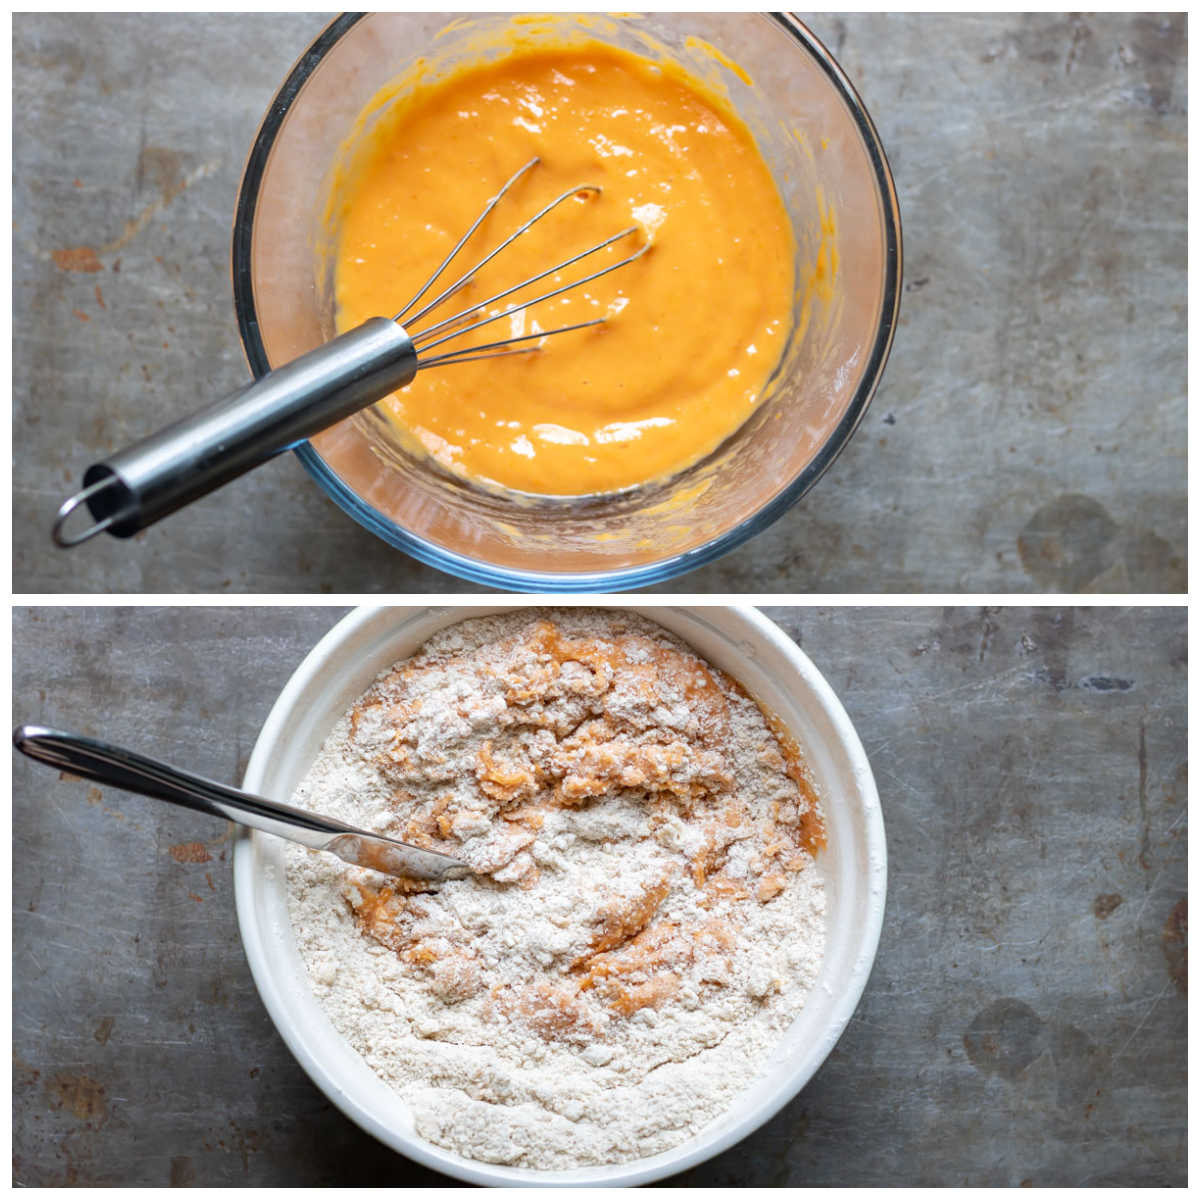 Mixing pumpkin puree and adding to the bowl.